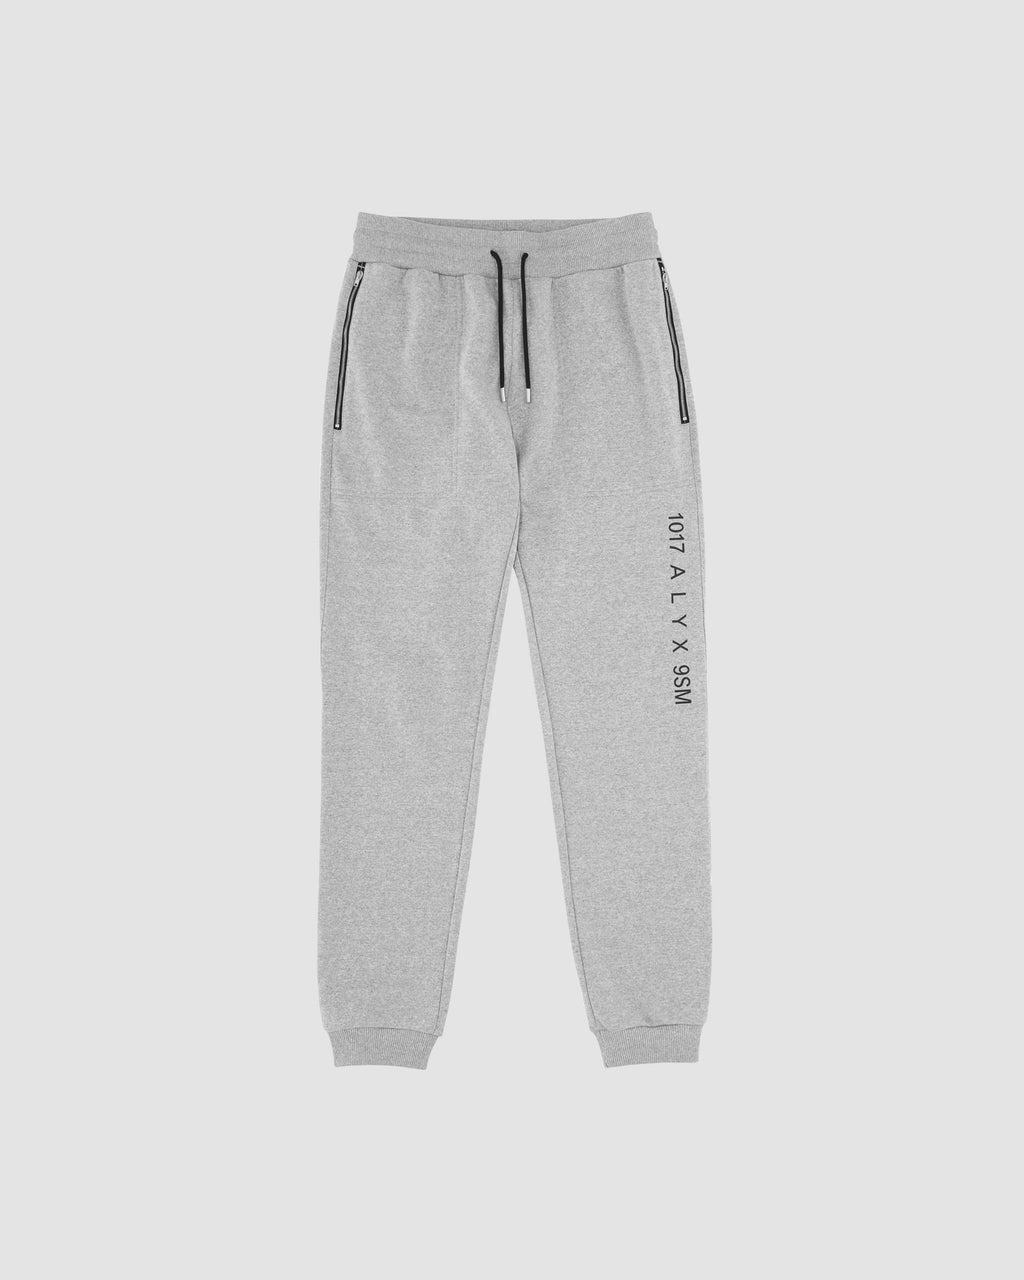 1017 ALYX 9SM | LOGO SWEATPANT | Pants | F19, Grey, Visual